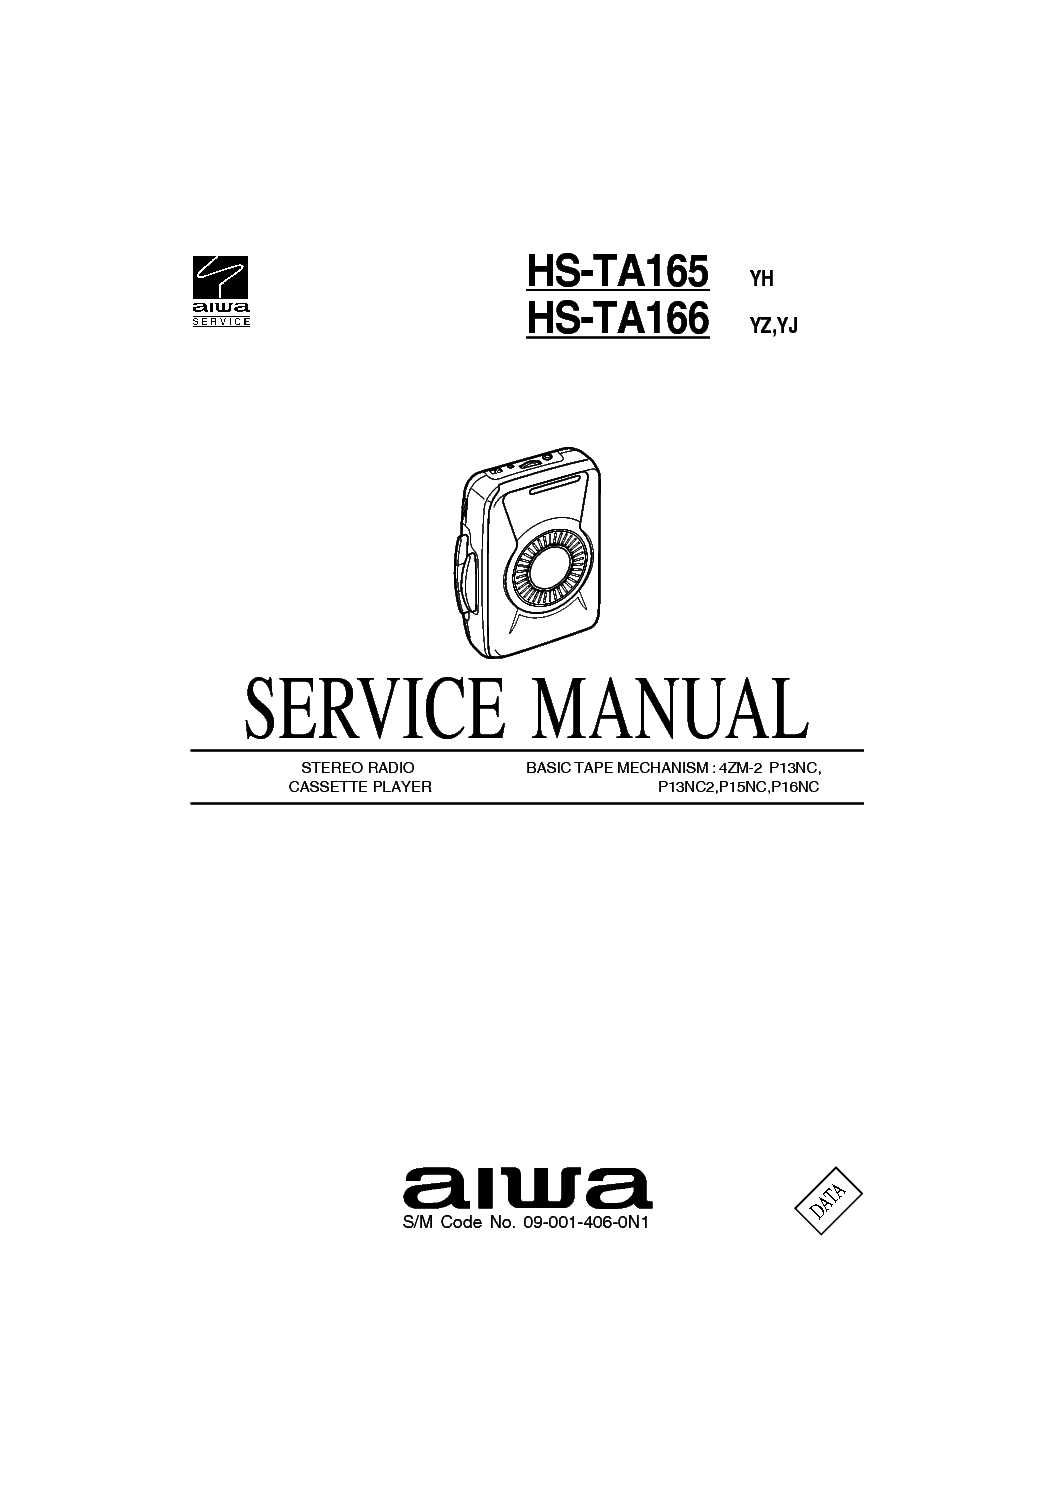 AIWA TPR-102 Service Manual free download, schematics